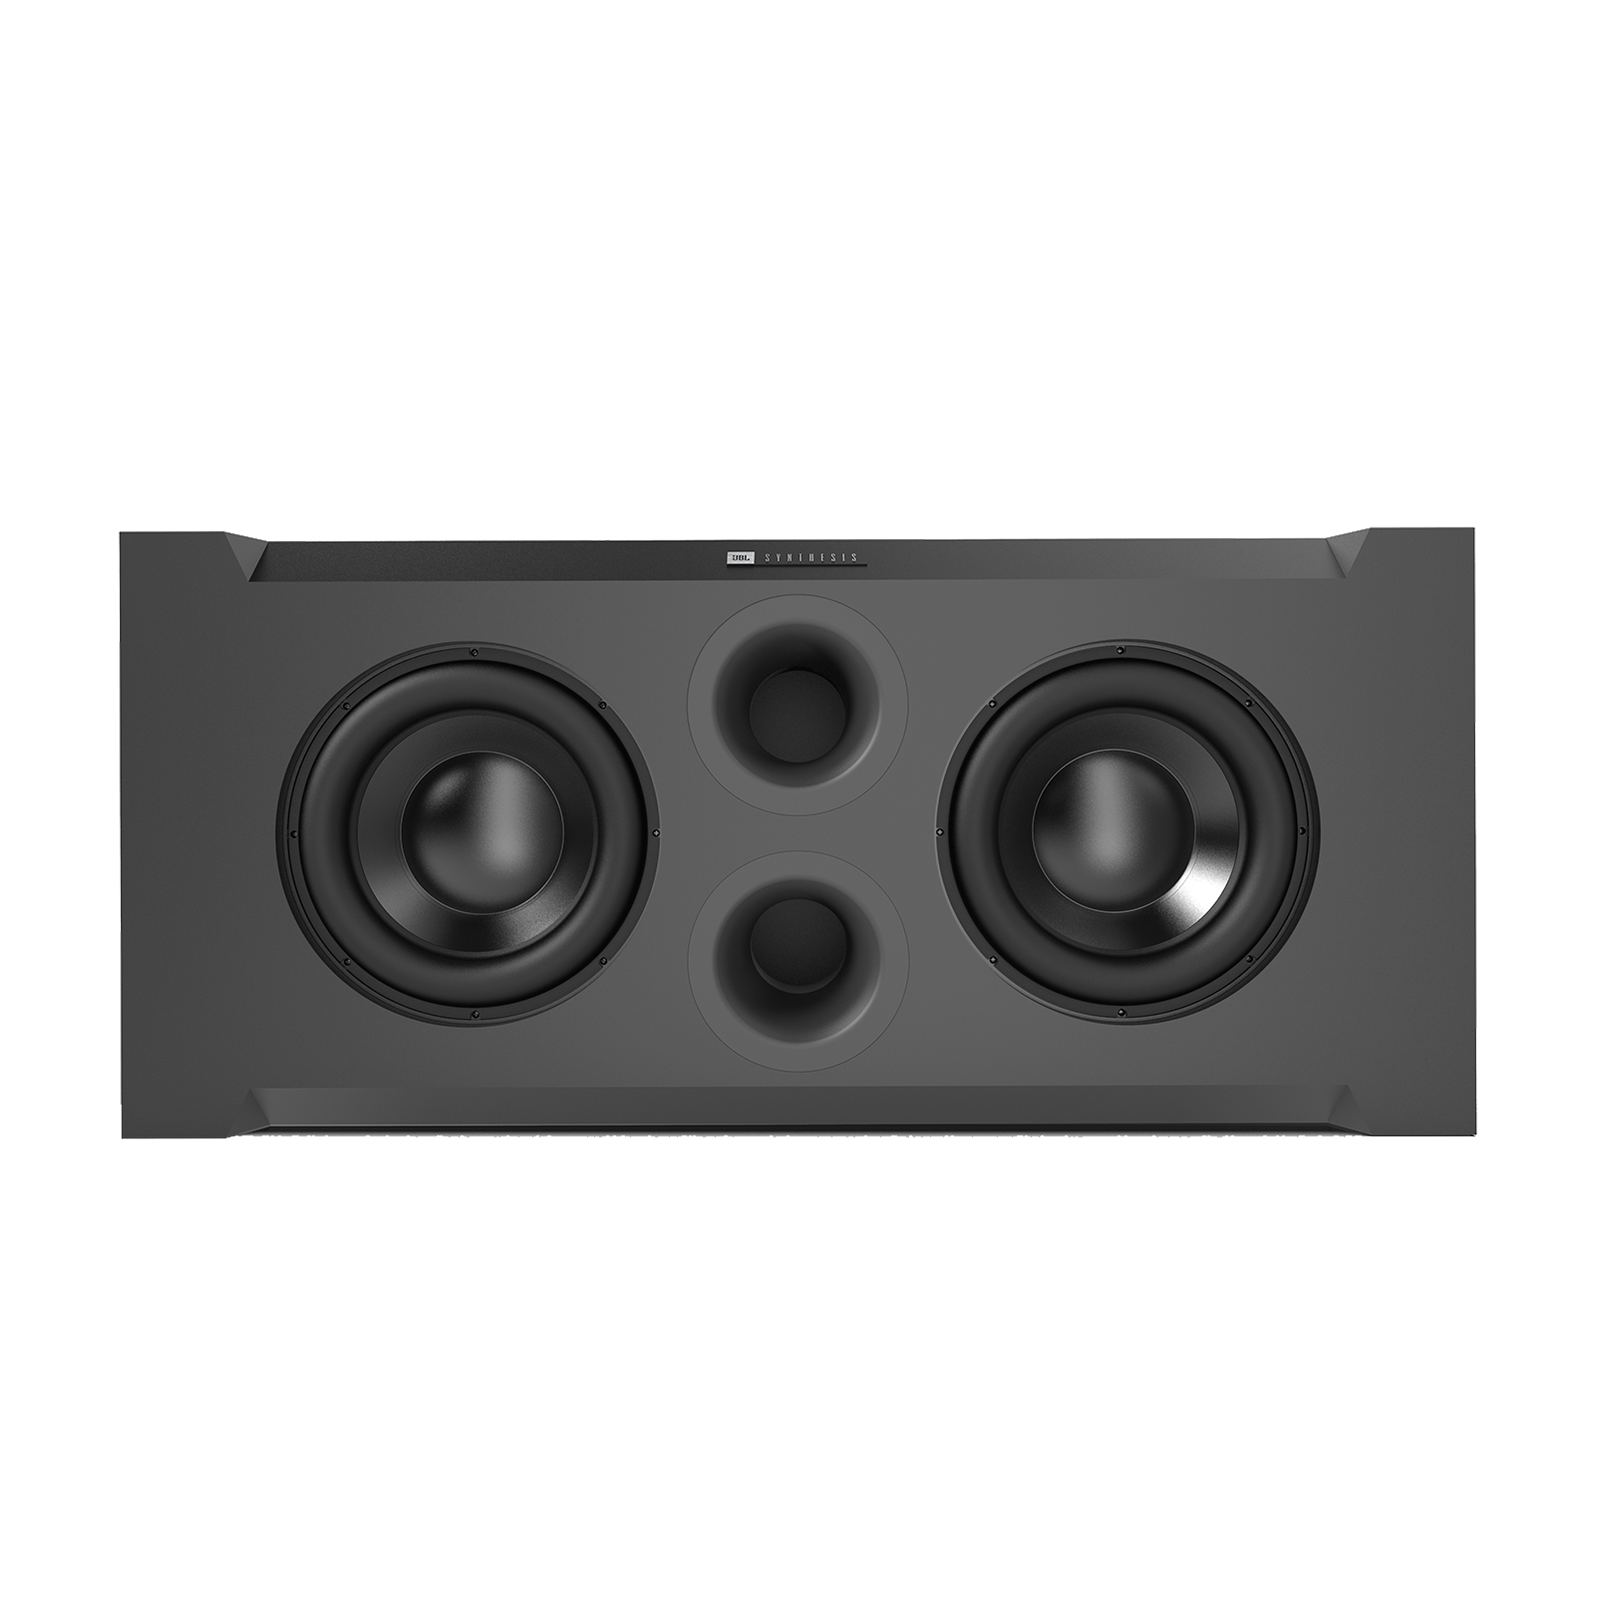 SSW-1 - Black - Dual 15-inch (380mm) Passive Subwoofer - Front